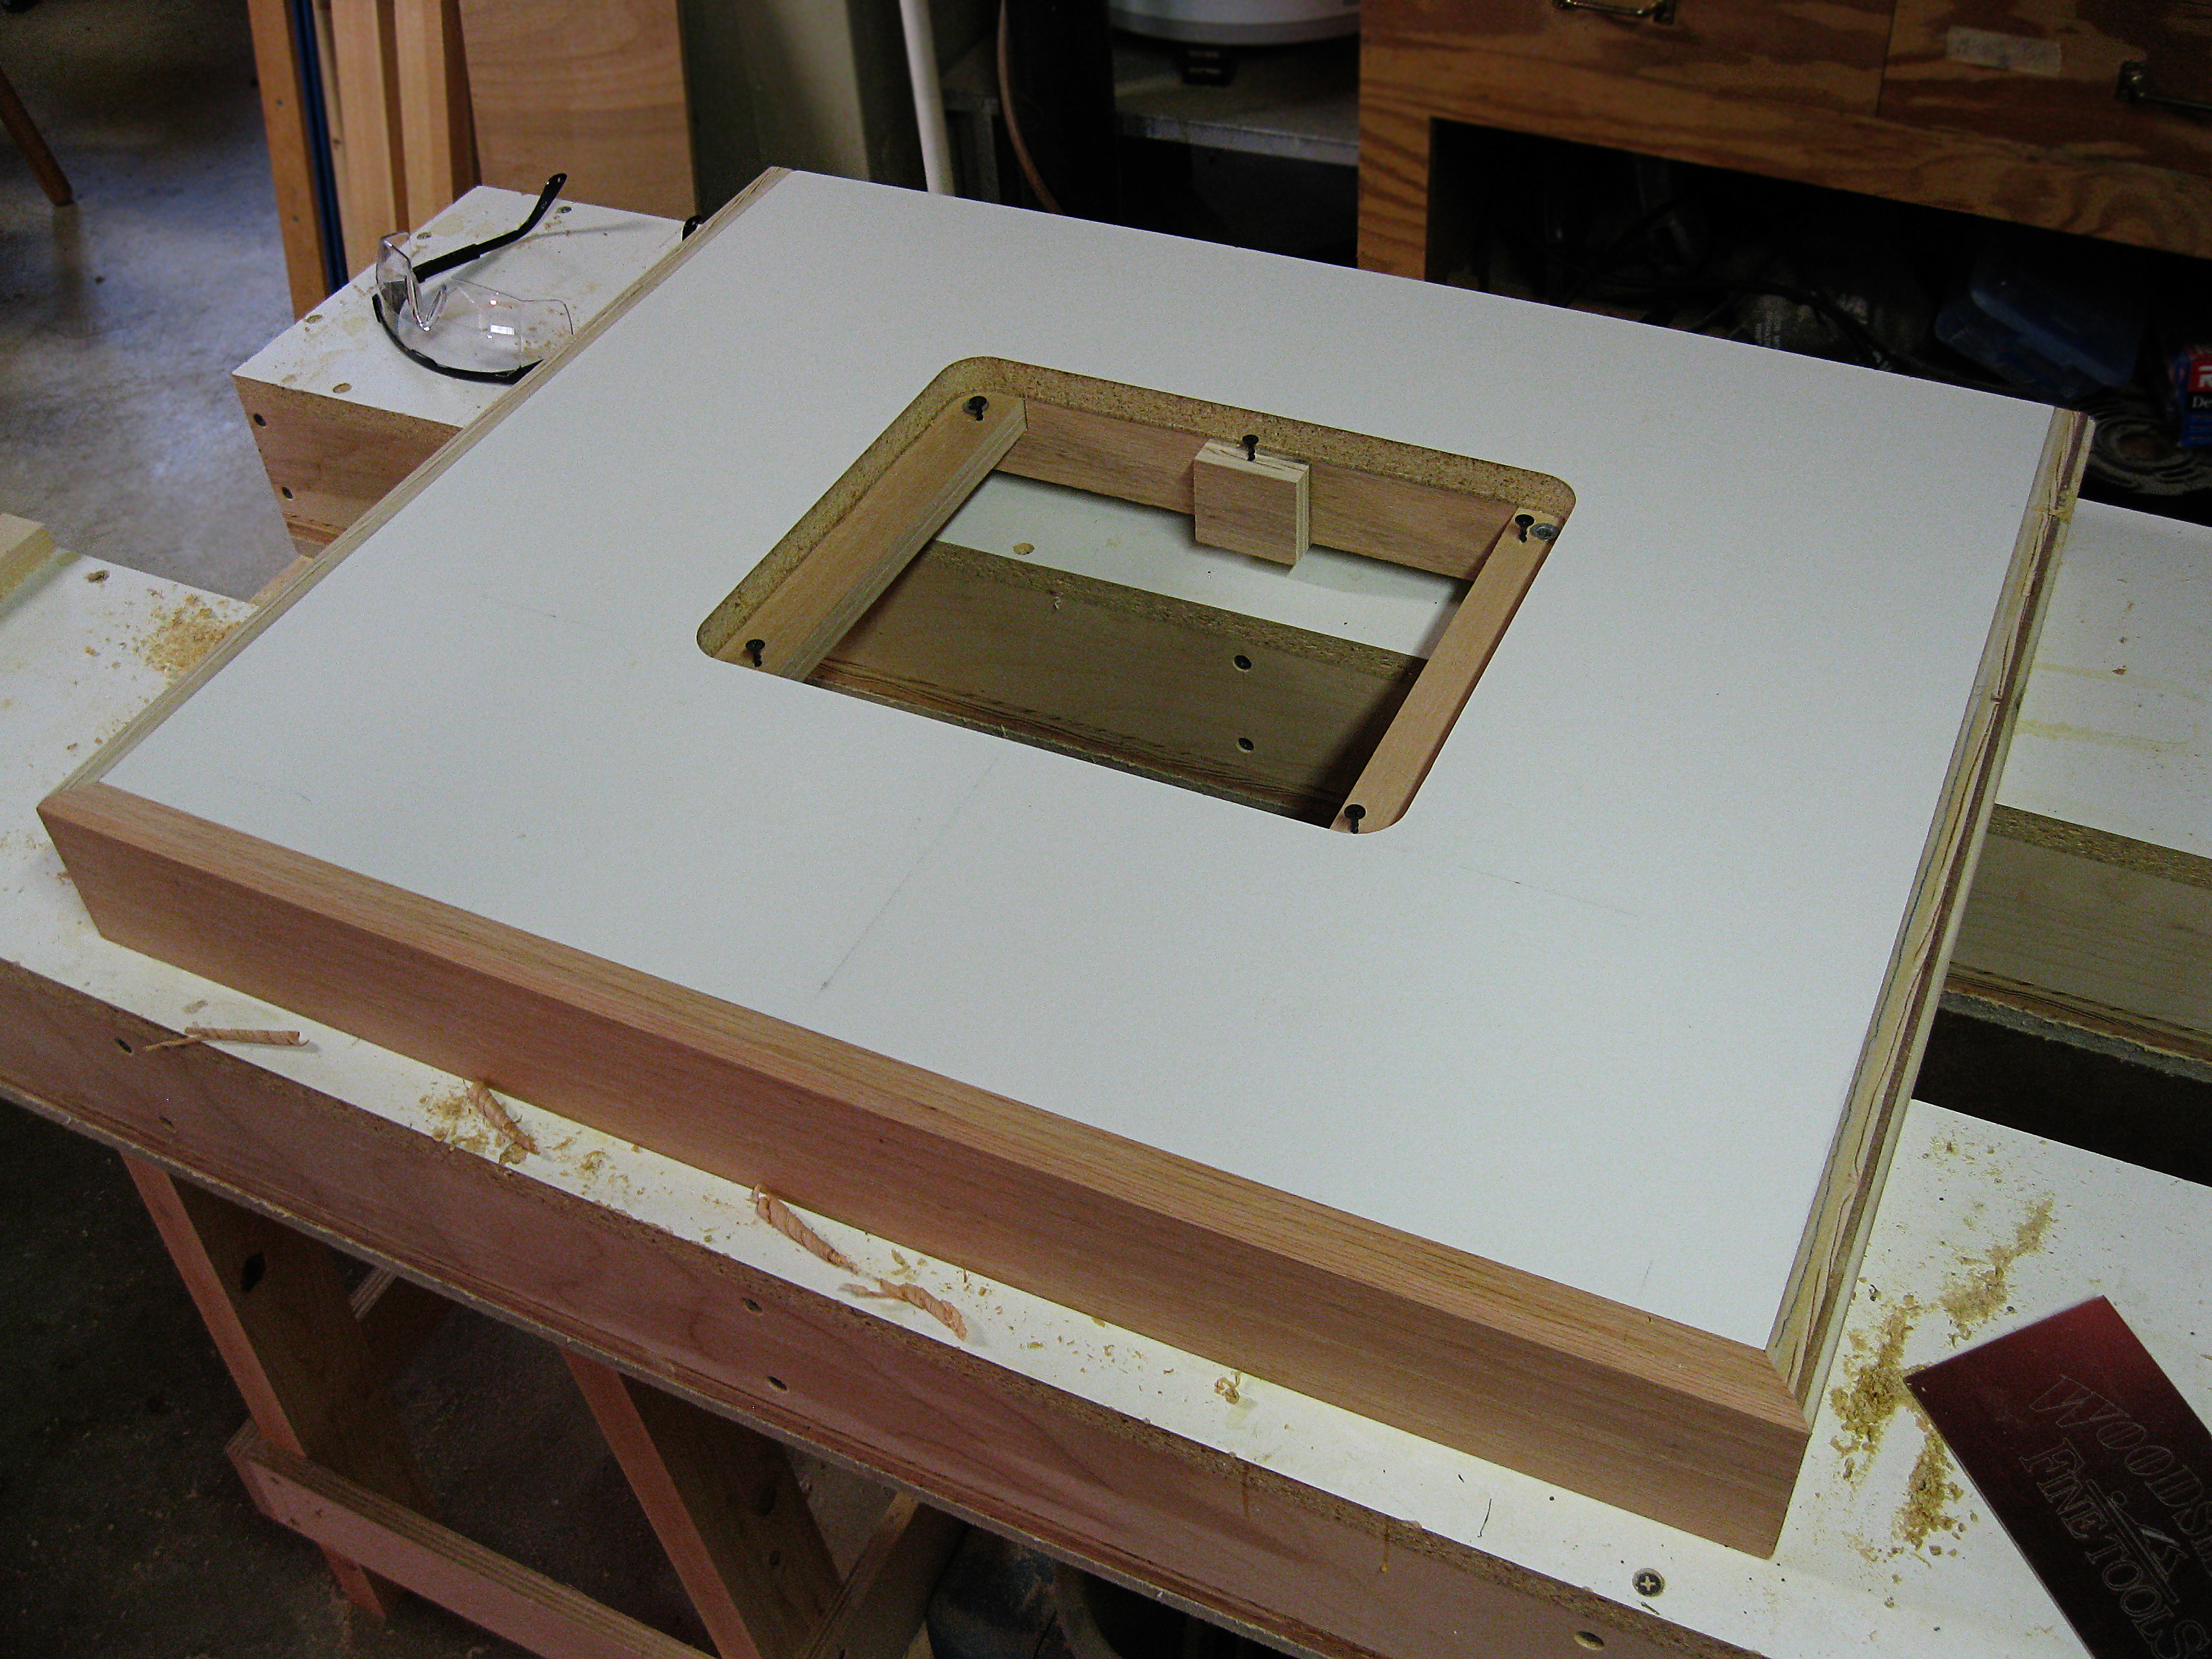 Best ideas about DIY Router Table Top . Save or Pin Woodcraft router table top Plans DIY How to Make Now.